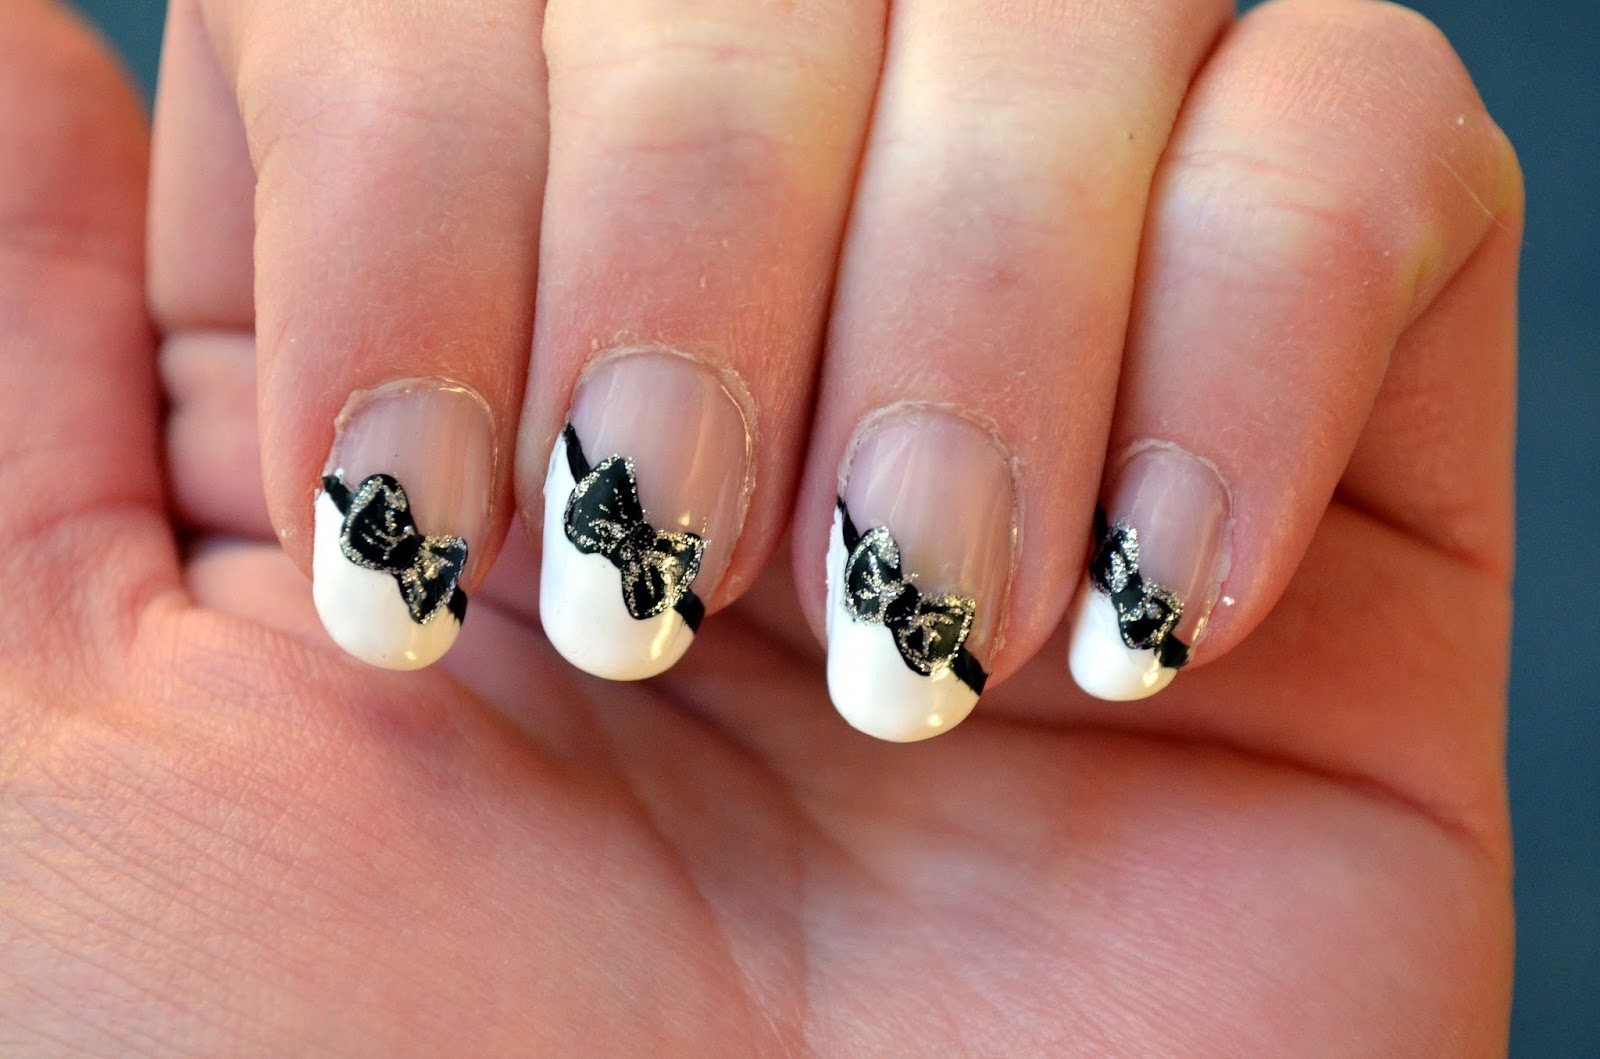 The Nail Diaries: Angled French Tip with a Black Bow - Wedding Mani!!